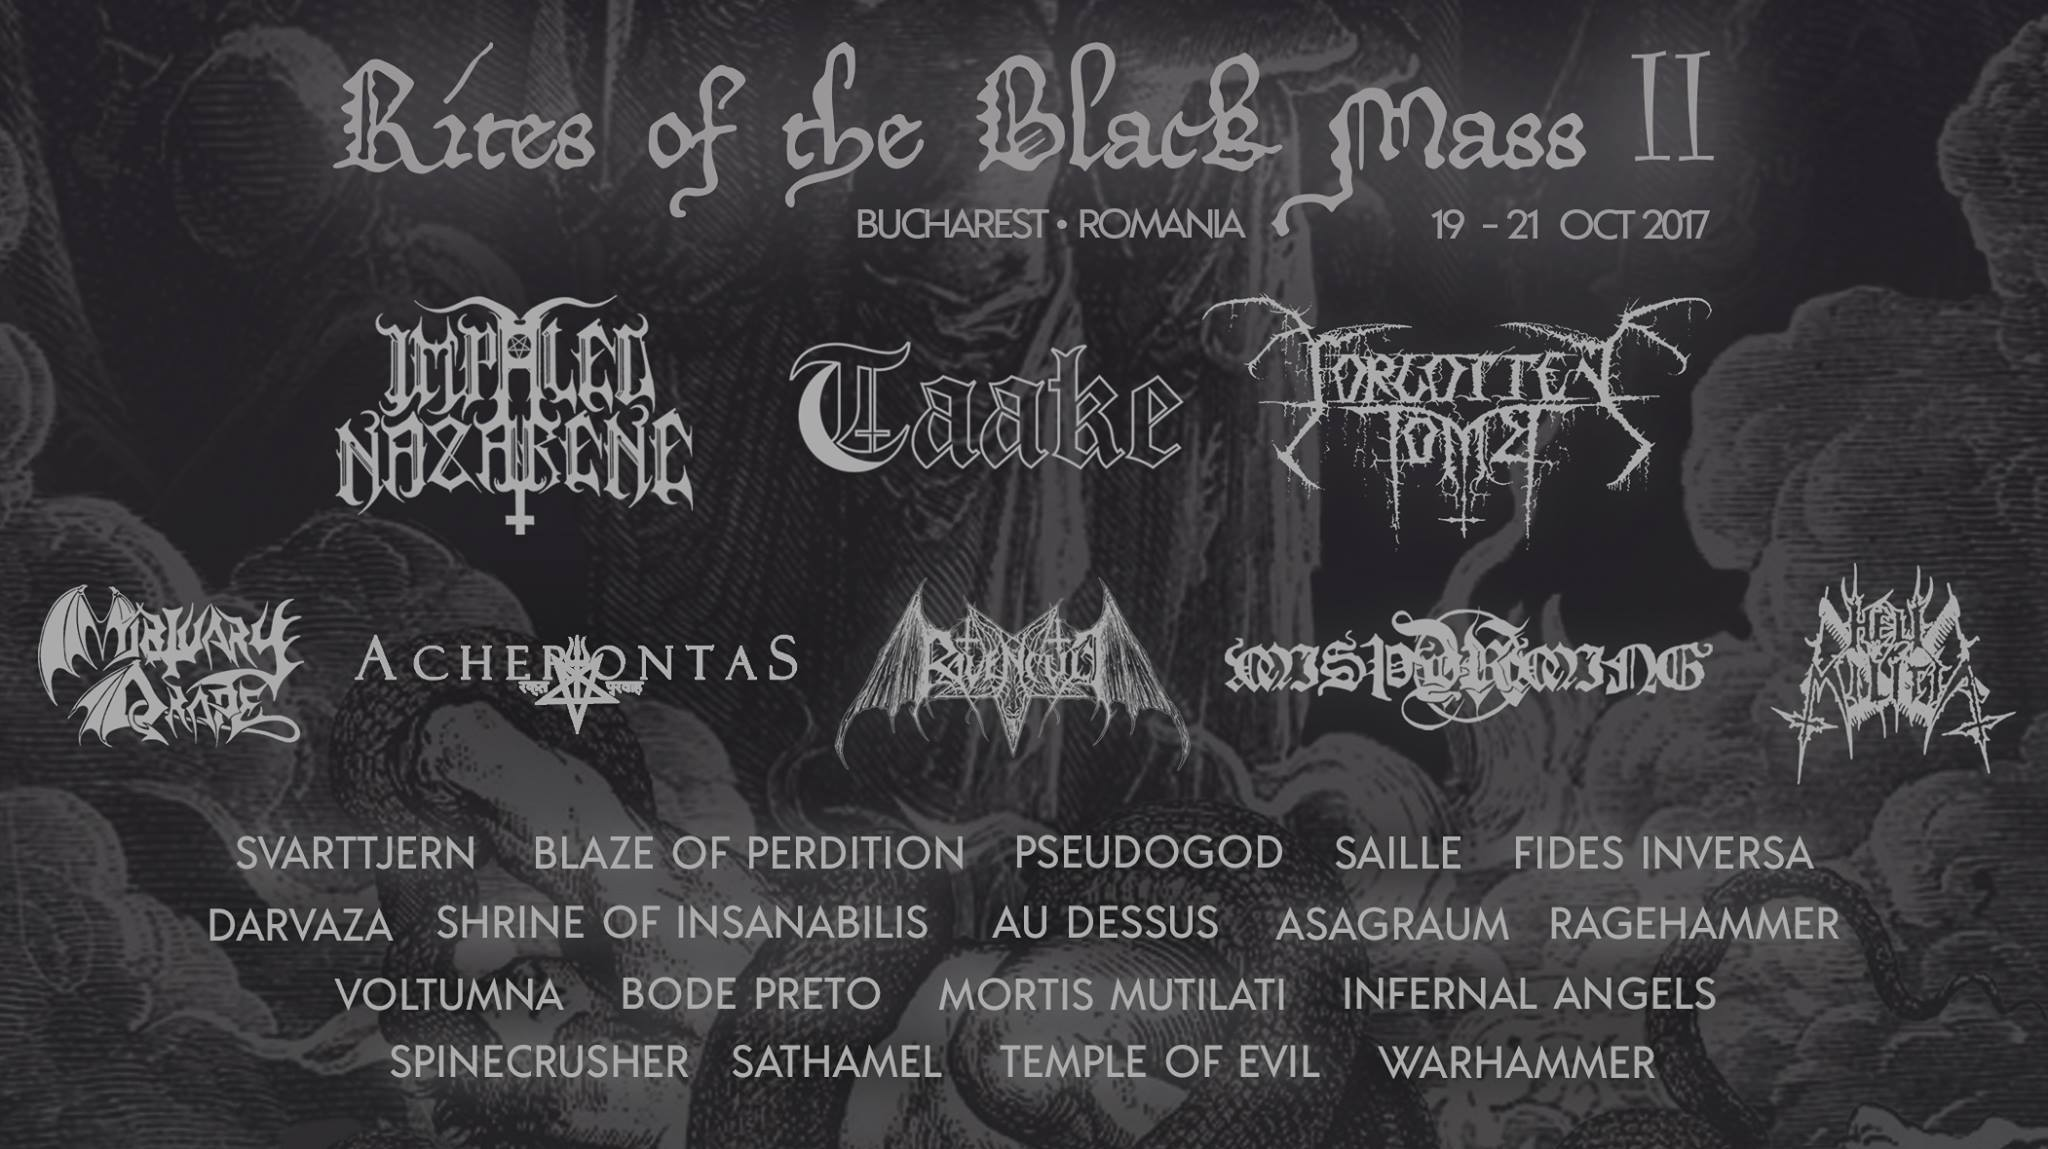 /Rites of the Black Mass II, 19 - 21.10.2017